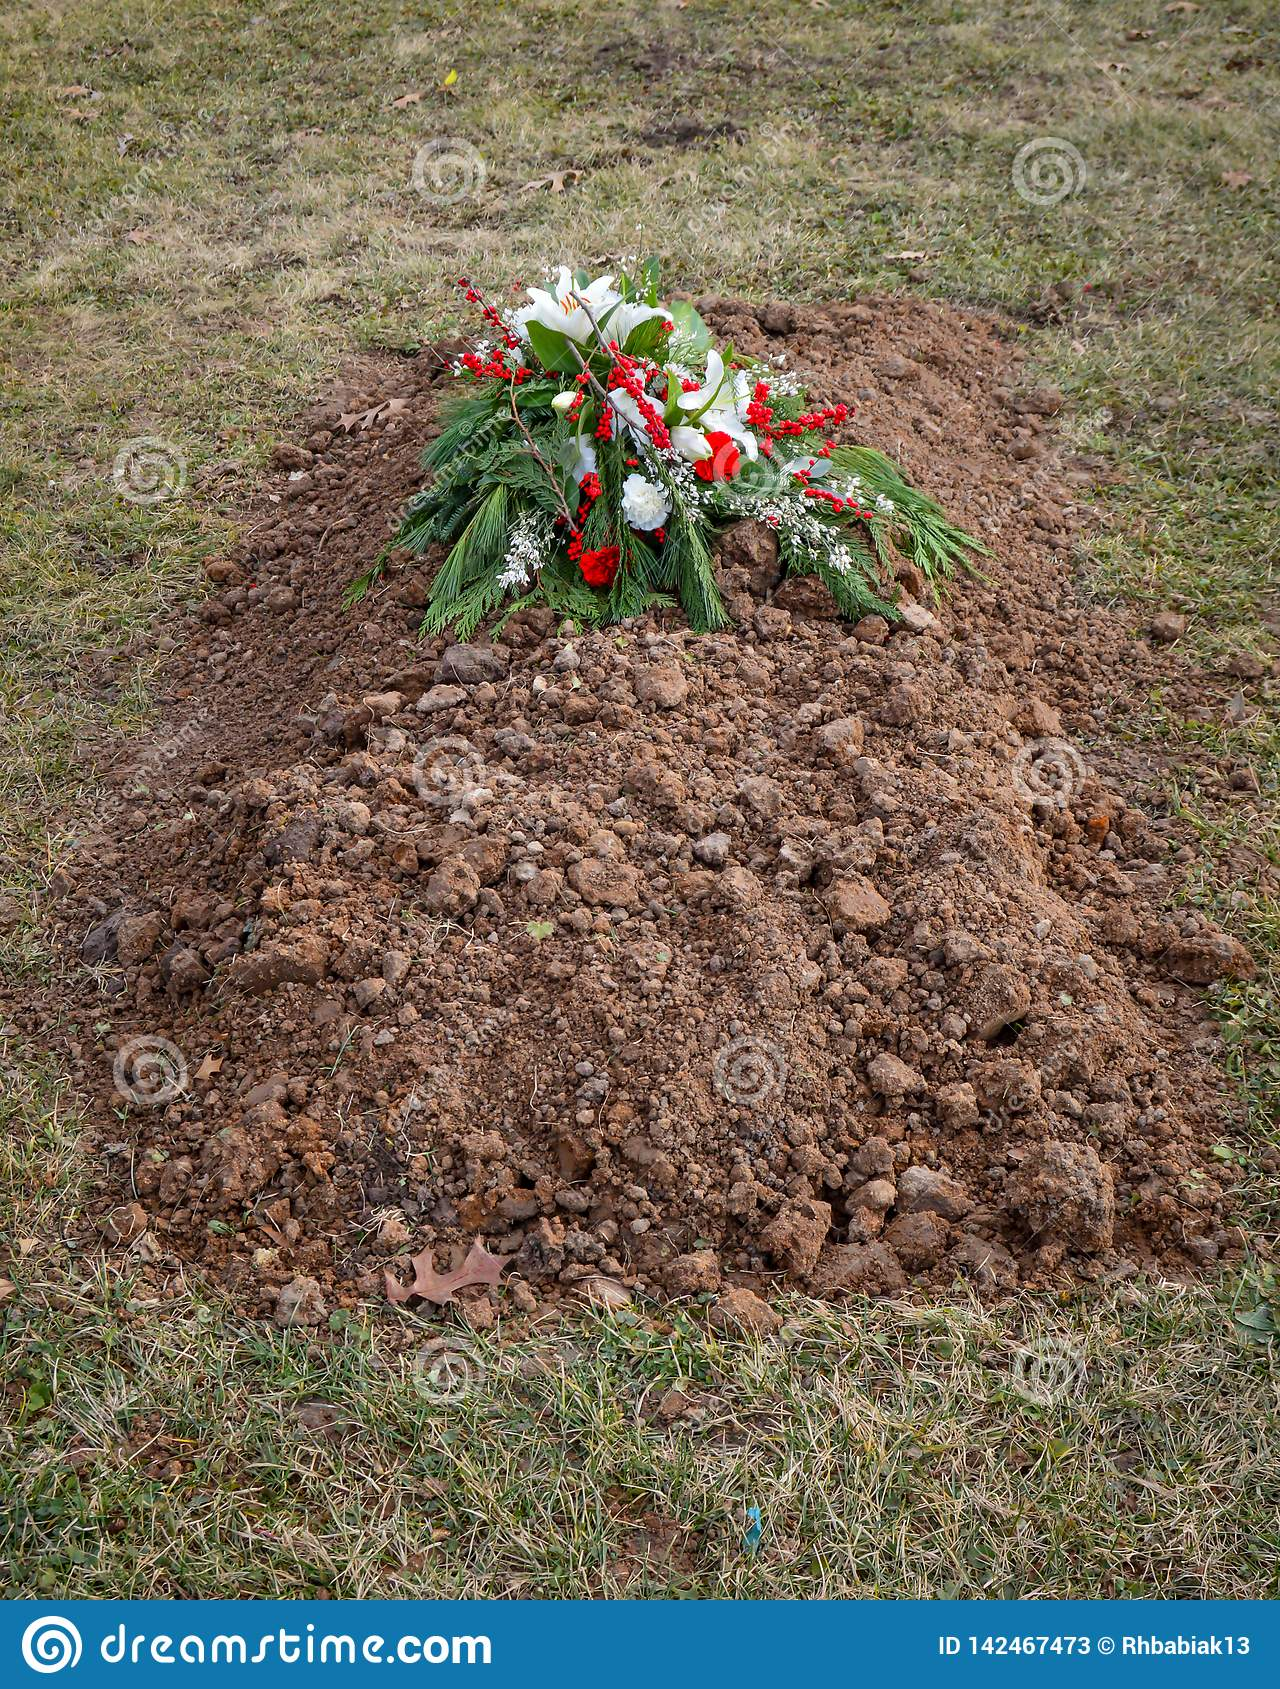 Freshly Dug Grave with Cemetery Flowers on Top of Ground